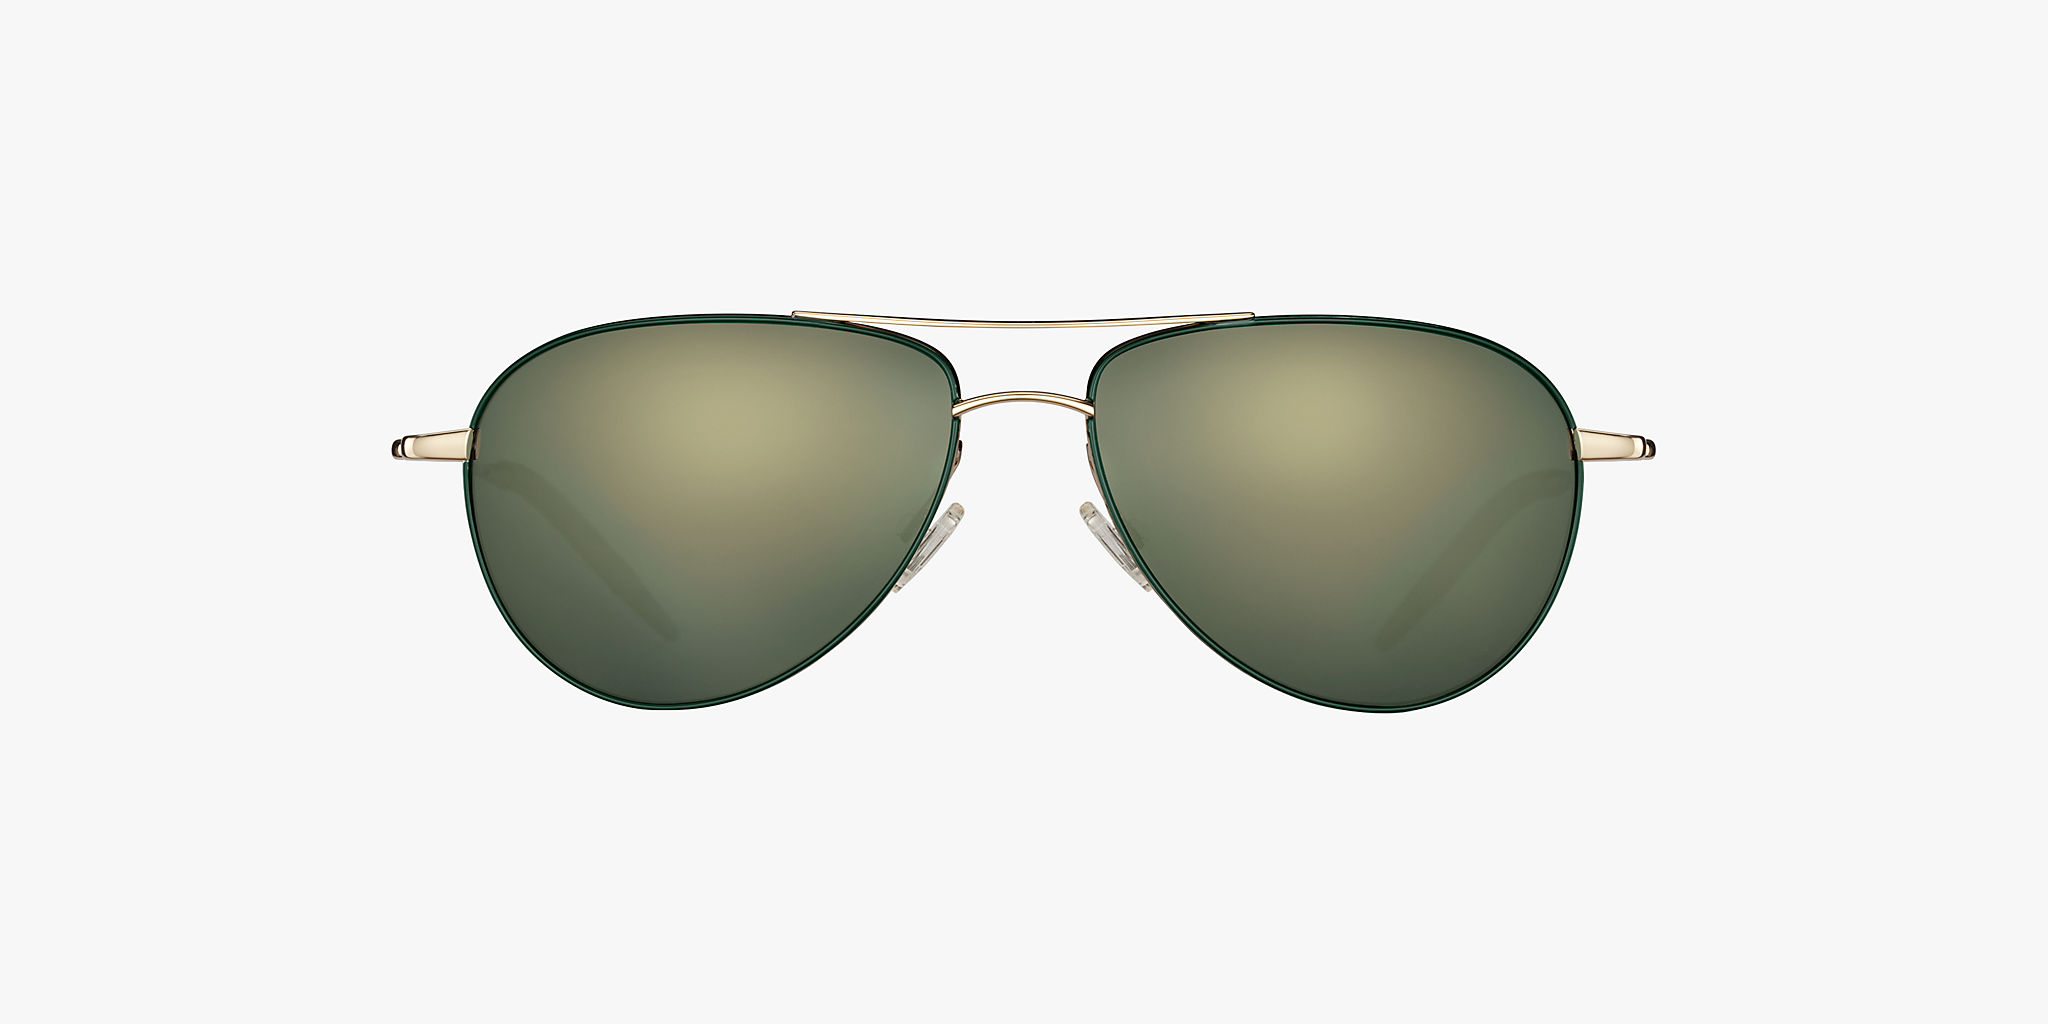 Sunglasses Oliver Benedict Amber Peoples Chrome Gold sdhCtrQ